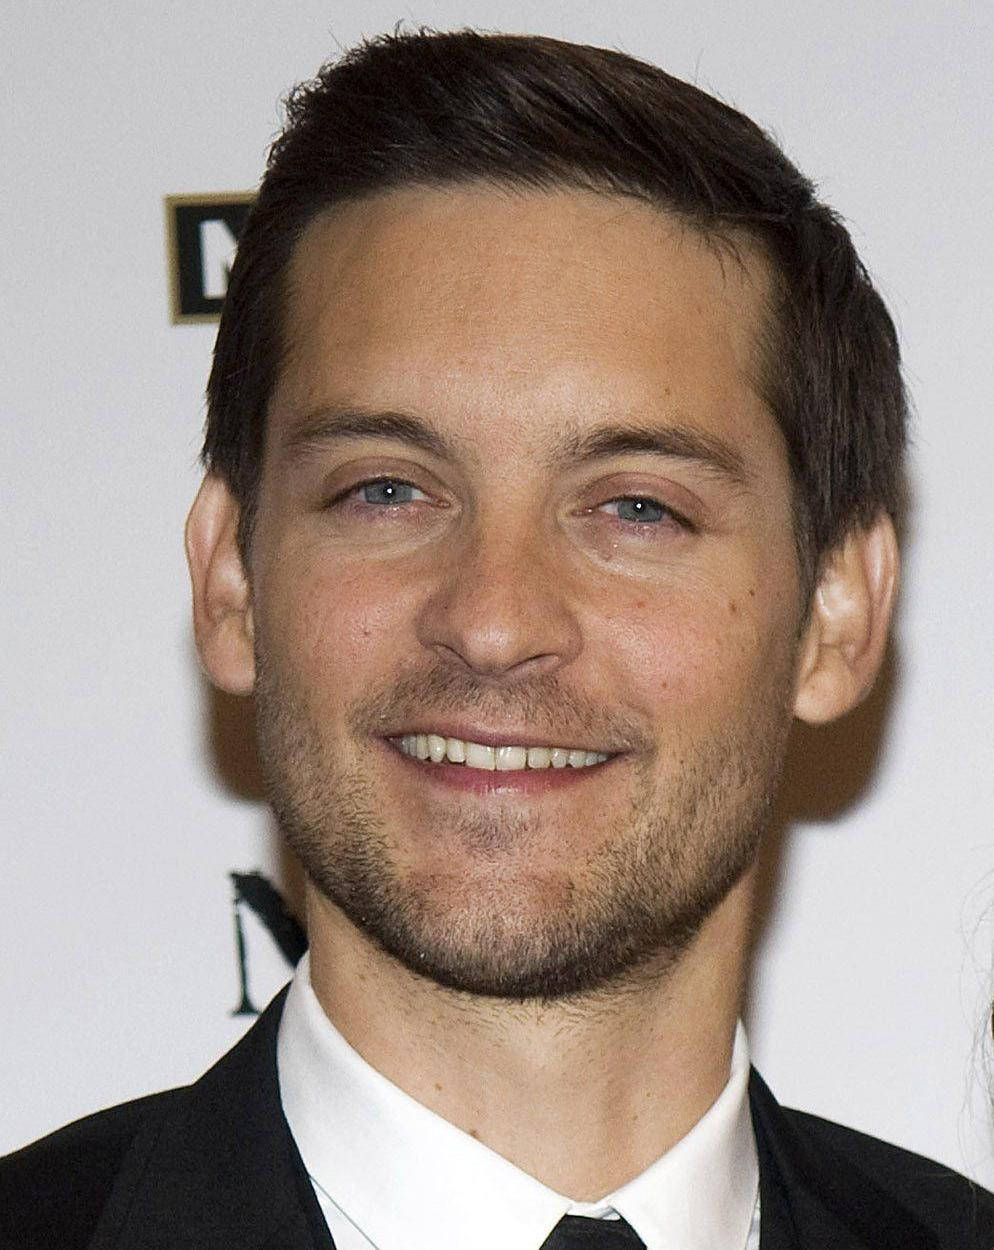 The 41-year old son of father Vincent Maguire and mother Wendy Brown, 170 cm tall Tobey Maguire in 2017 photo